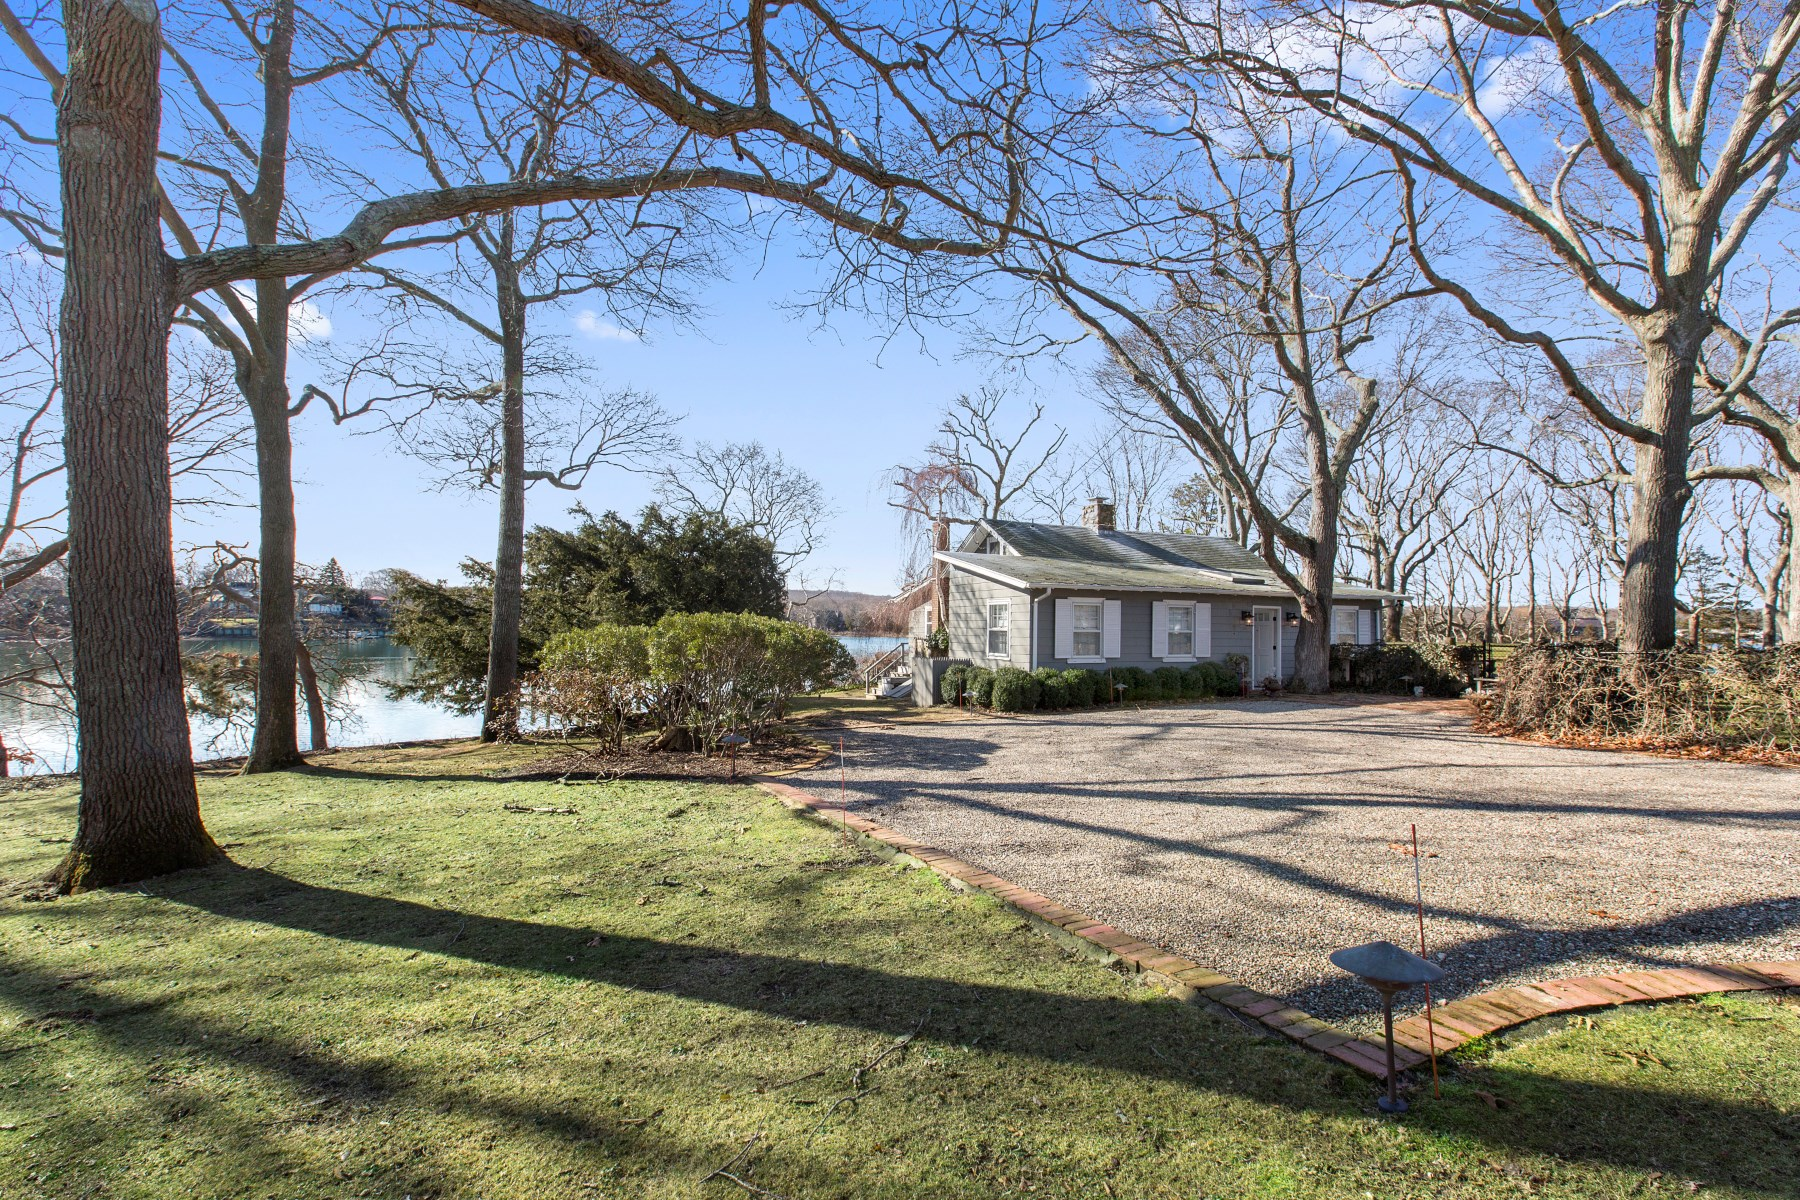 Single Family Home for Rent at Sag Harbor, Almost its Own Island Sag Harbor, New York 11963 United States